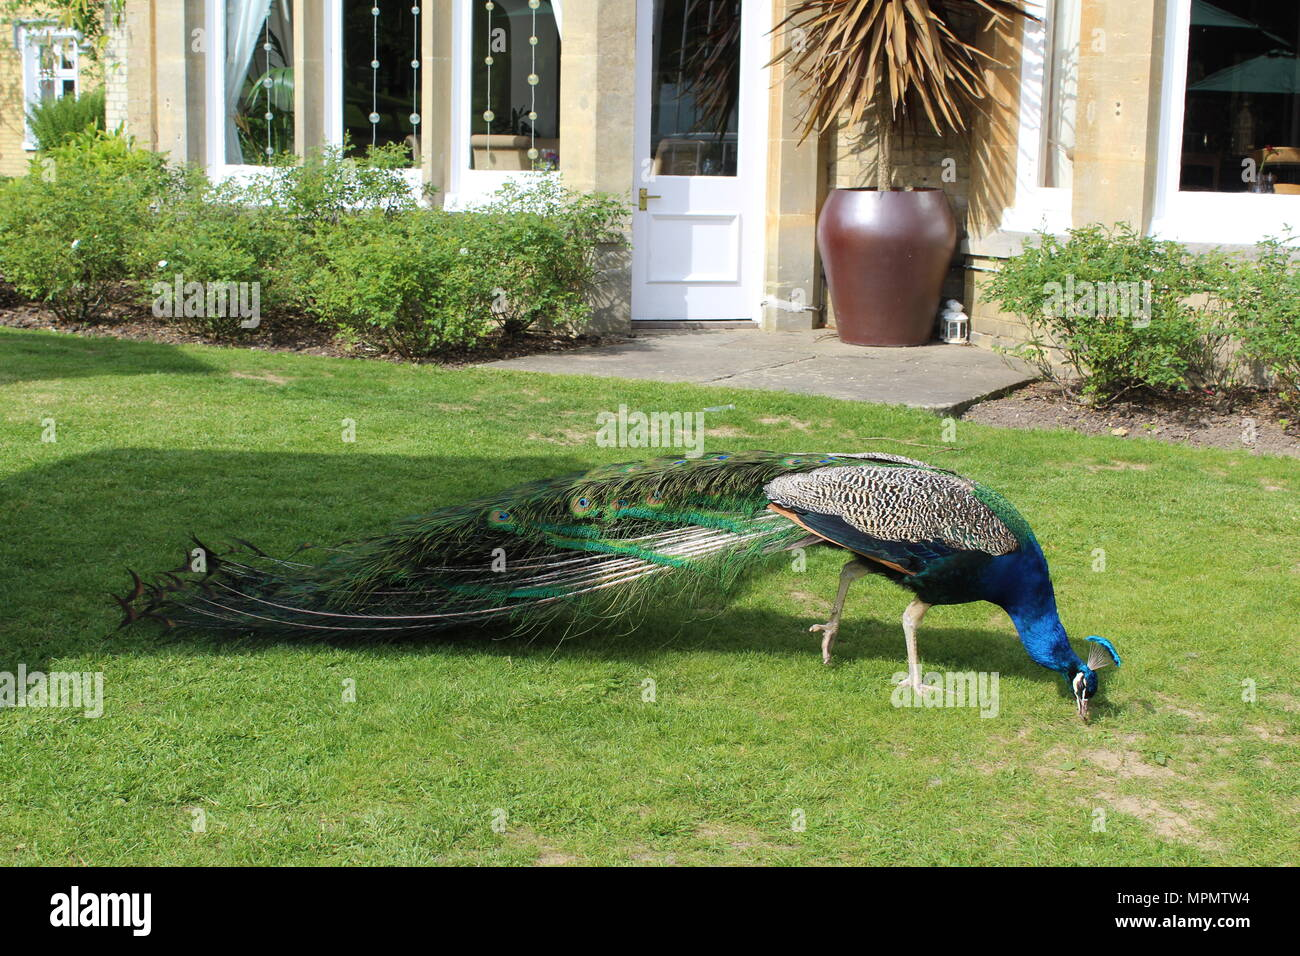 Peacock walking by a house - Stock Image